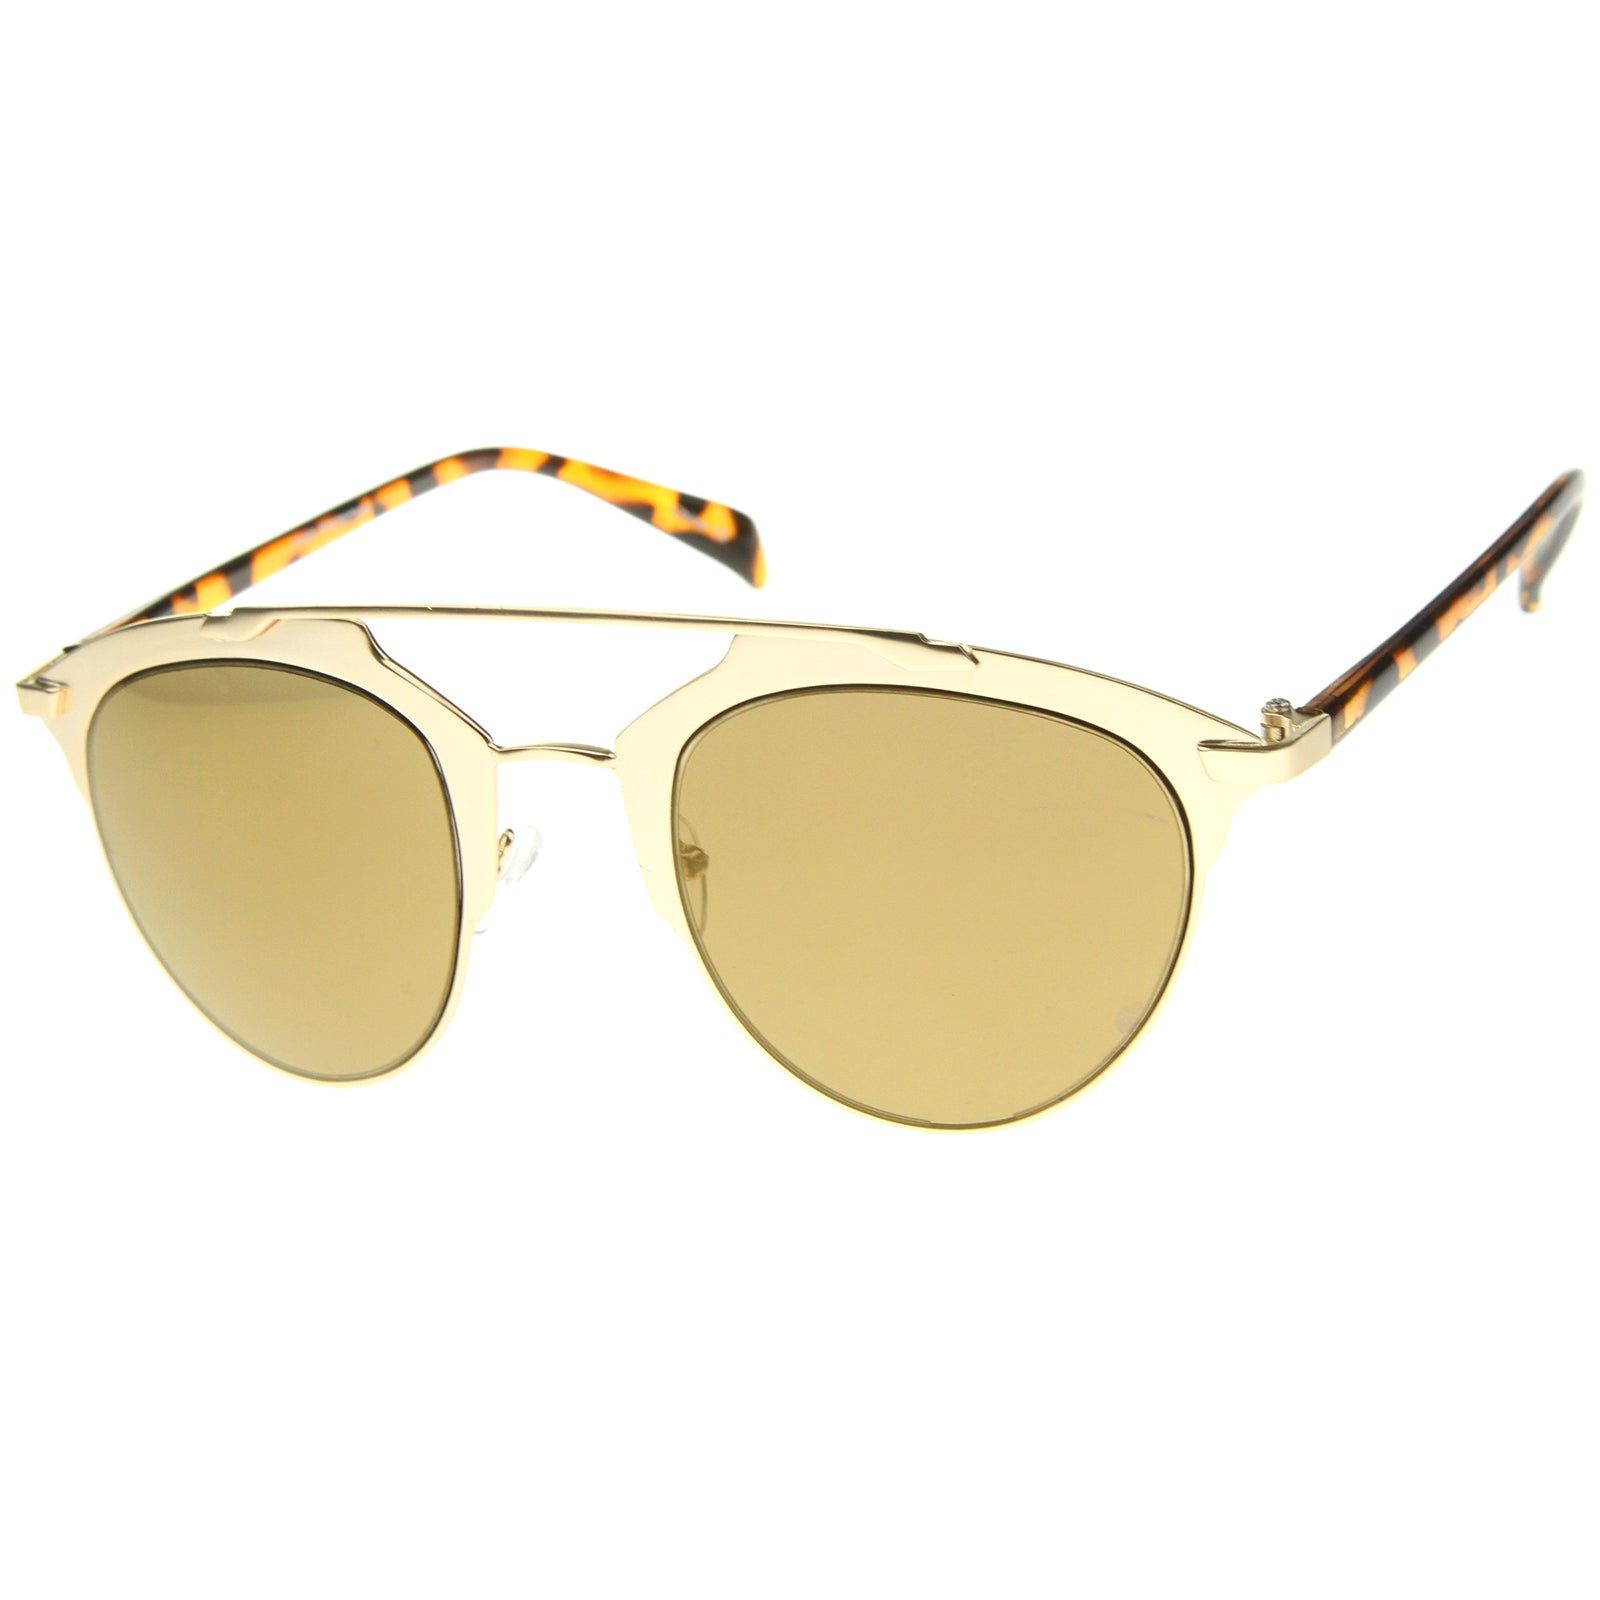 Modern Fashion Metal Double Bridge Mirror Lens Pantos Aviator Sunglasses 50mm - sunglass.la - 6